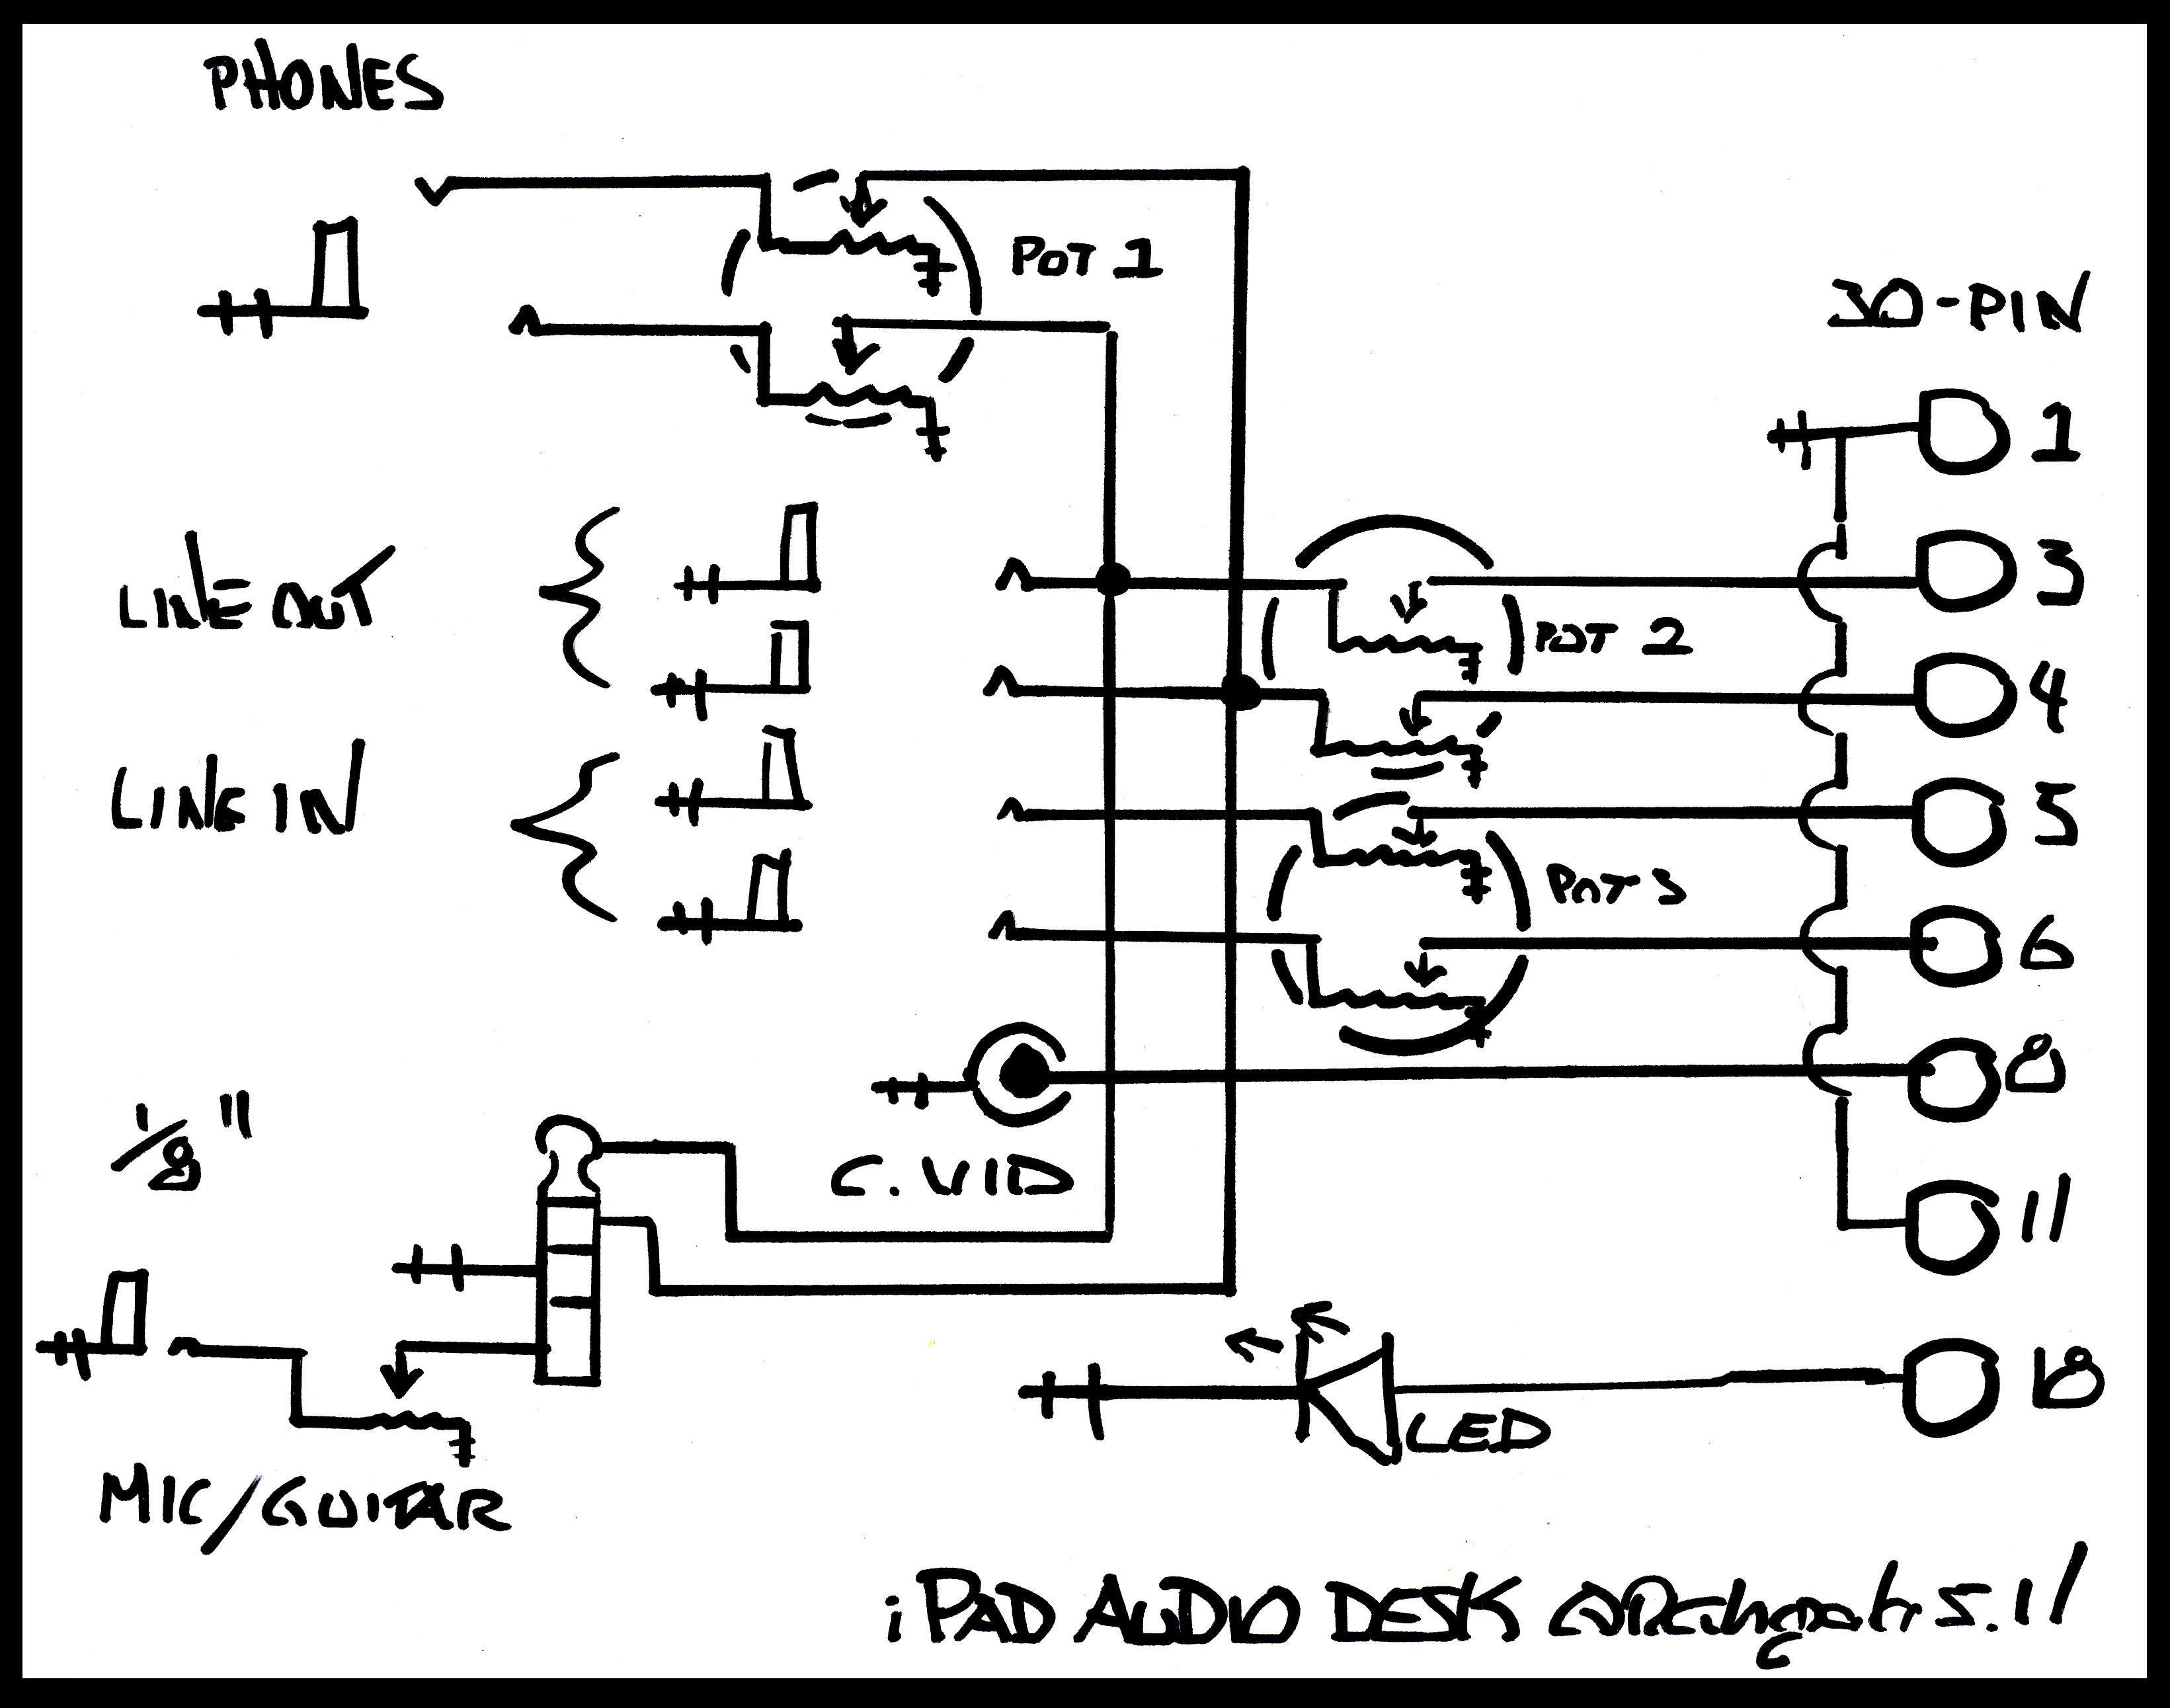 Ipad Audio Desk Schematic Flickr